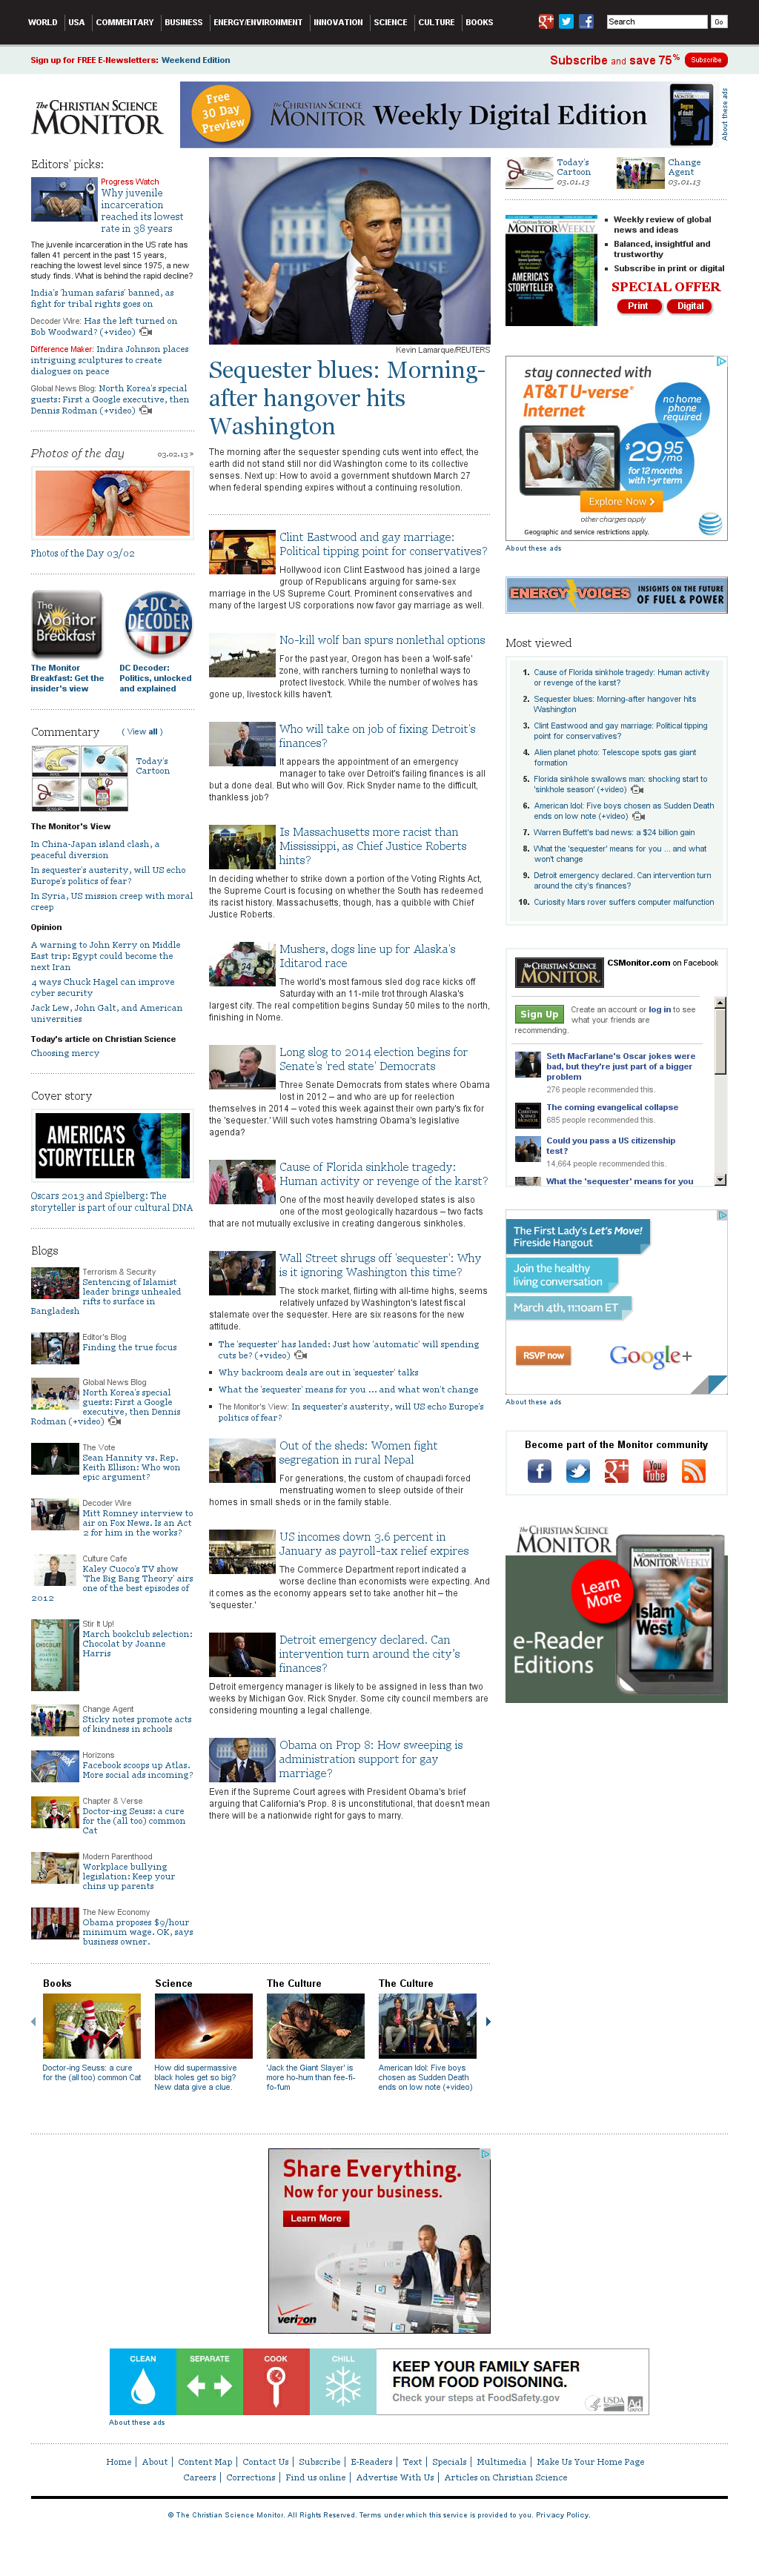 The Christian Science Monitor at Sunday March 3, 2013, 12:03 p.m. UTC